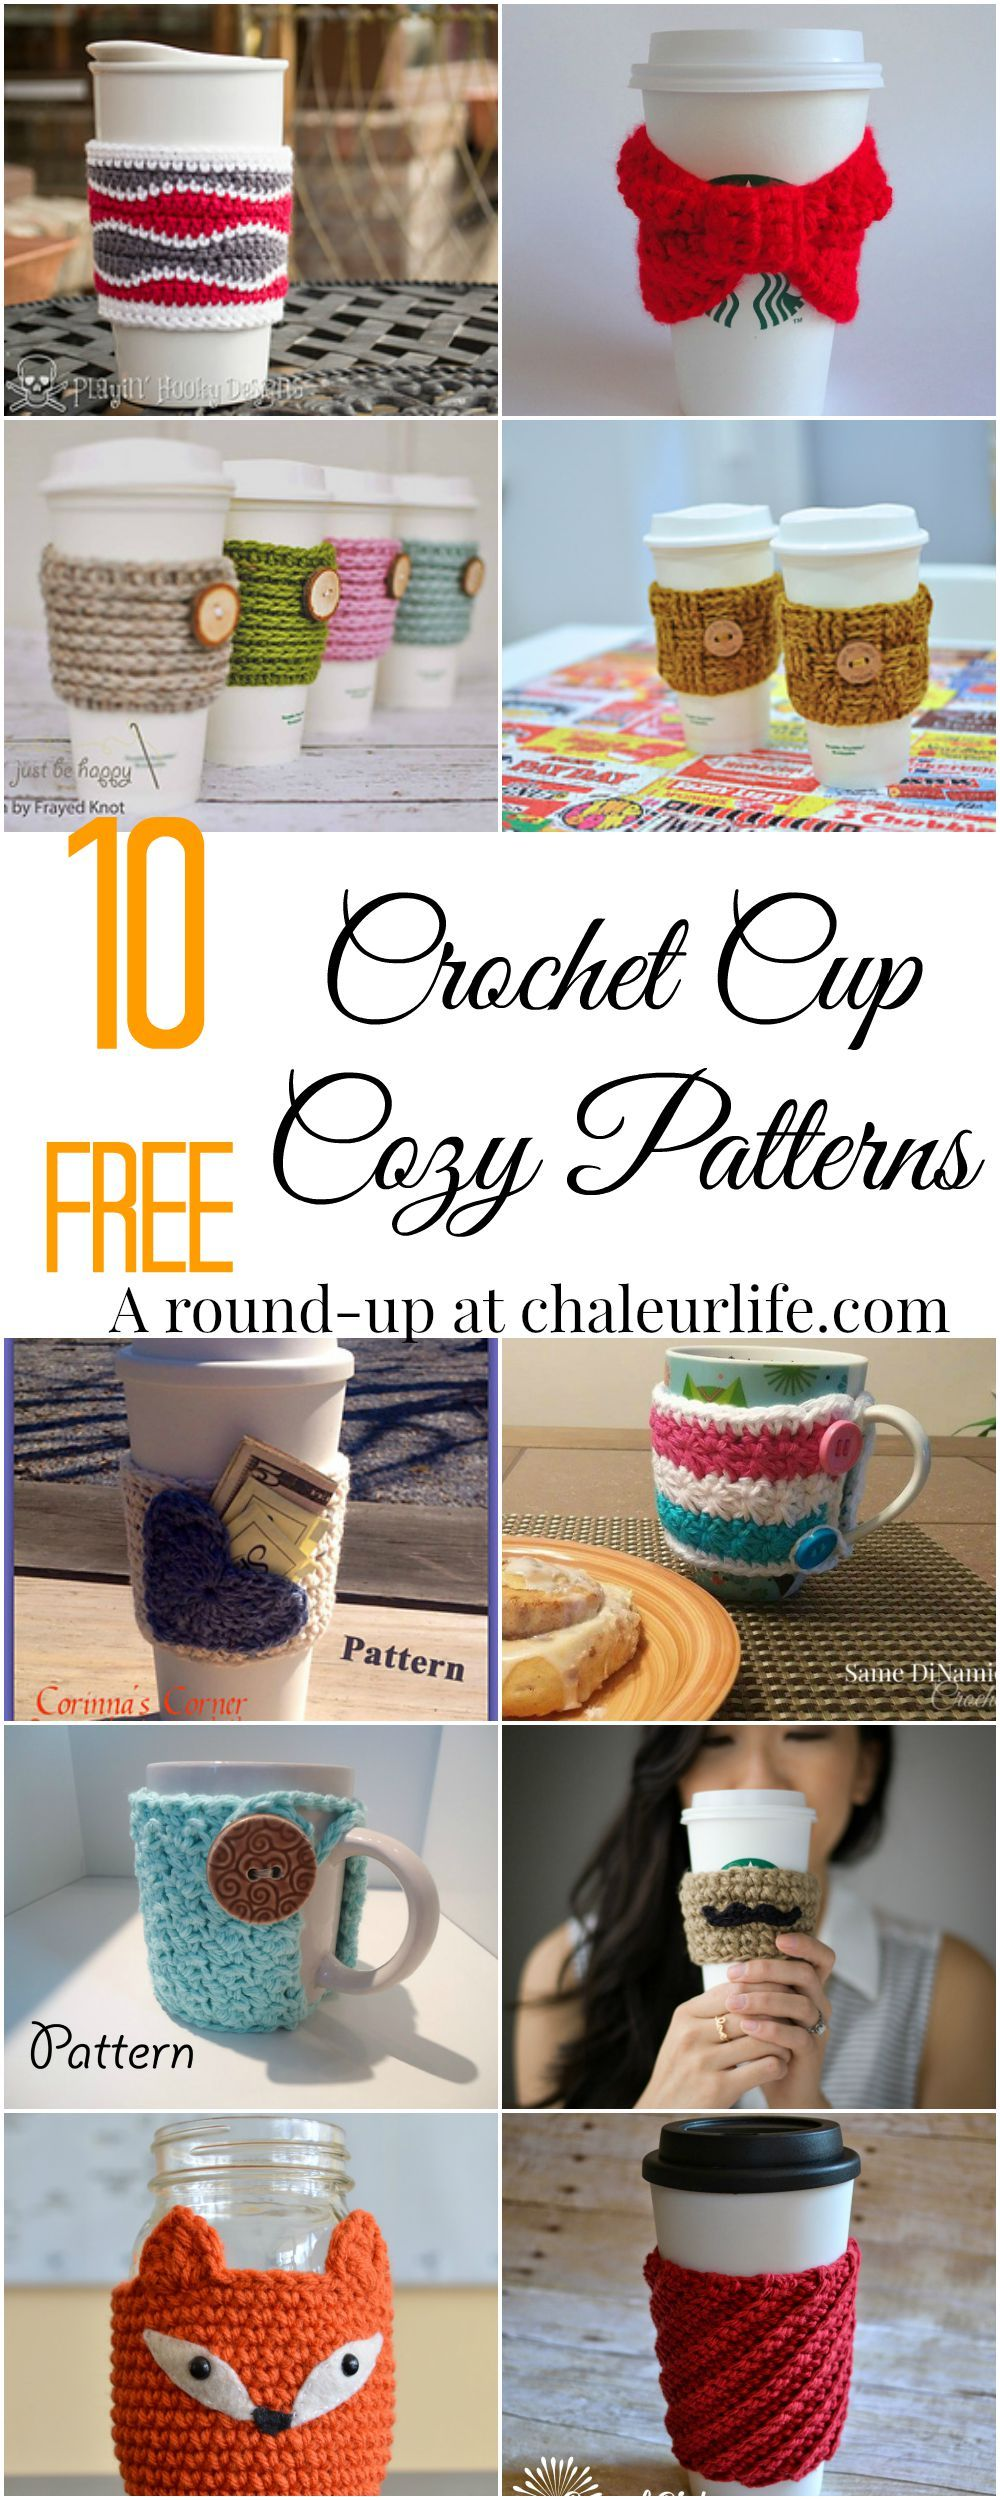 Free Crochet Patterns Gift Ideas : 10 Free Crochet Cup Cozy Patterns. Perfect for a quick and ...